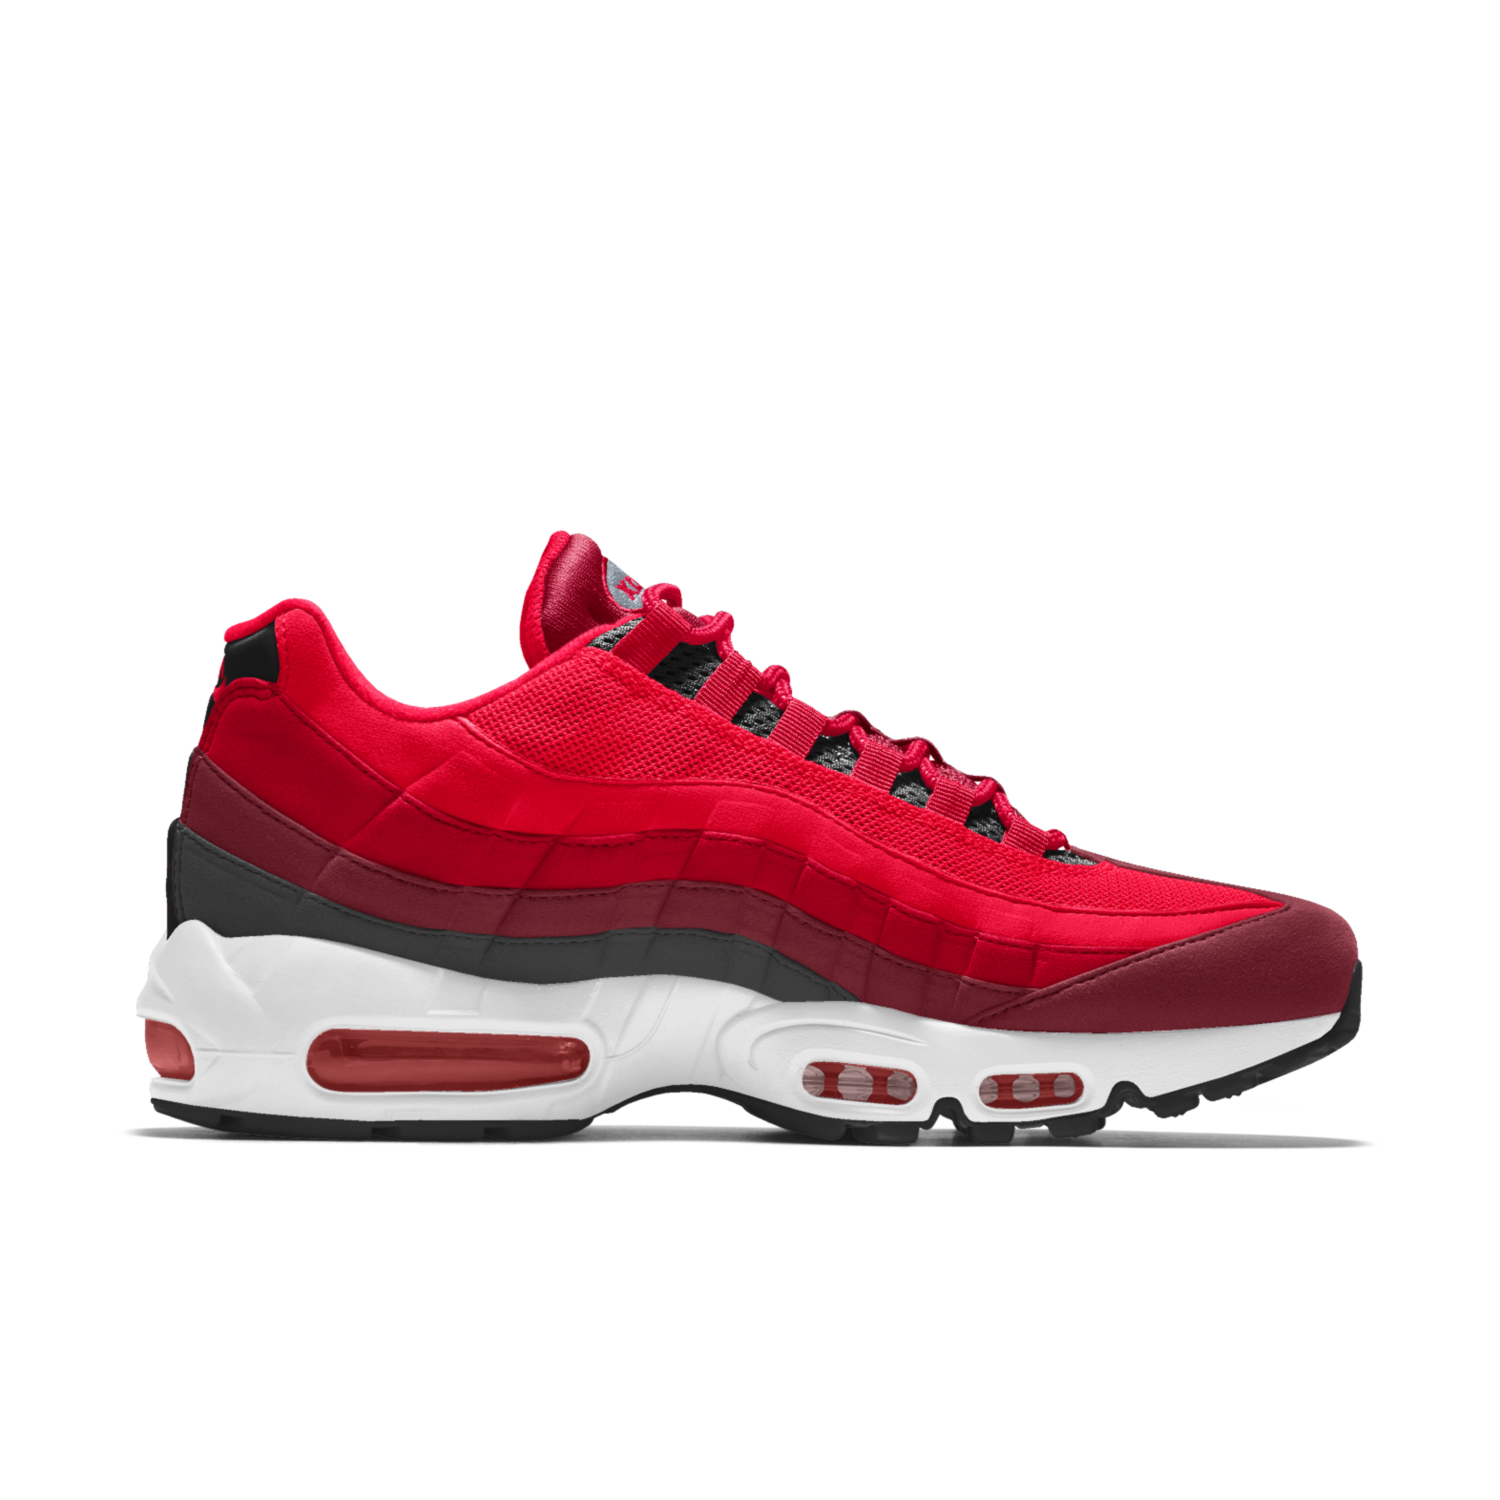 nike air max 95 id 280 deals and coupons best bargains. Black Bedroom Furniture Sets. Home Design Ideas